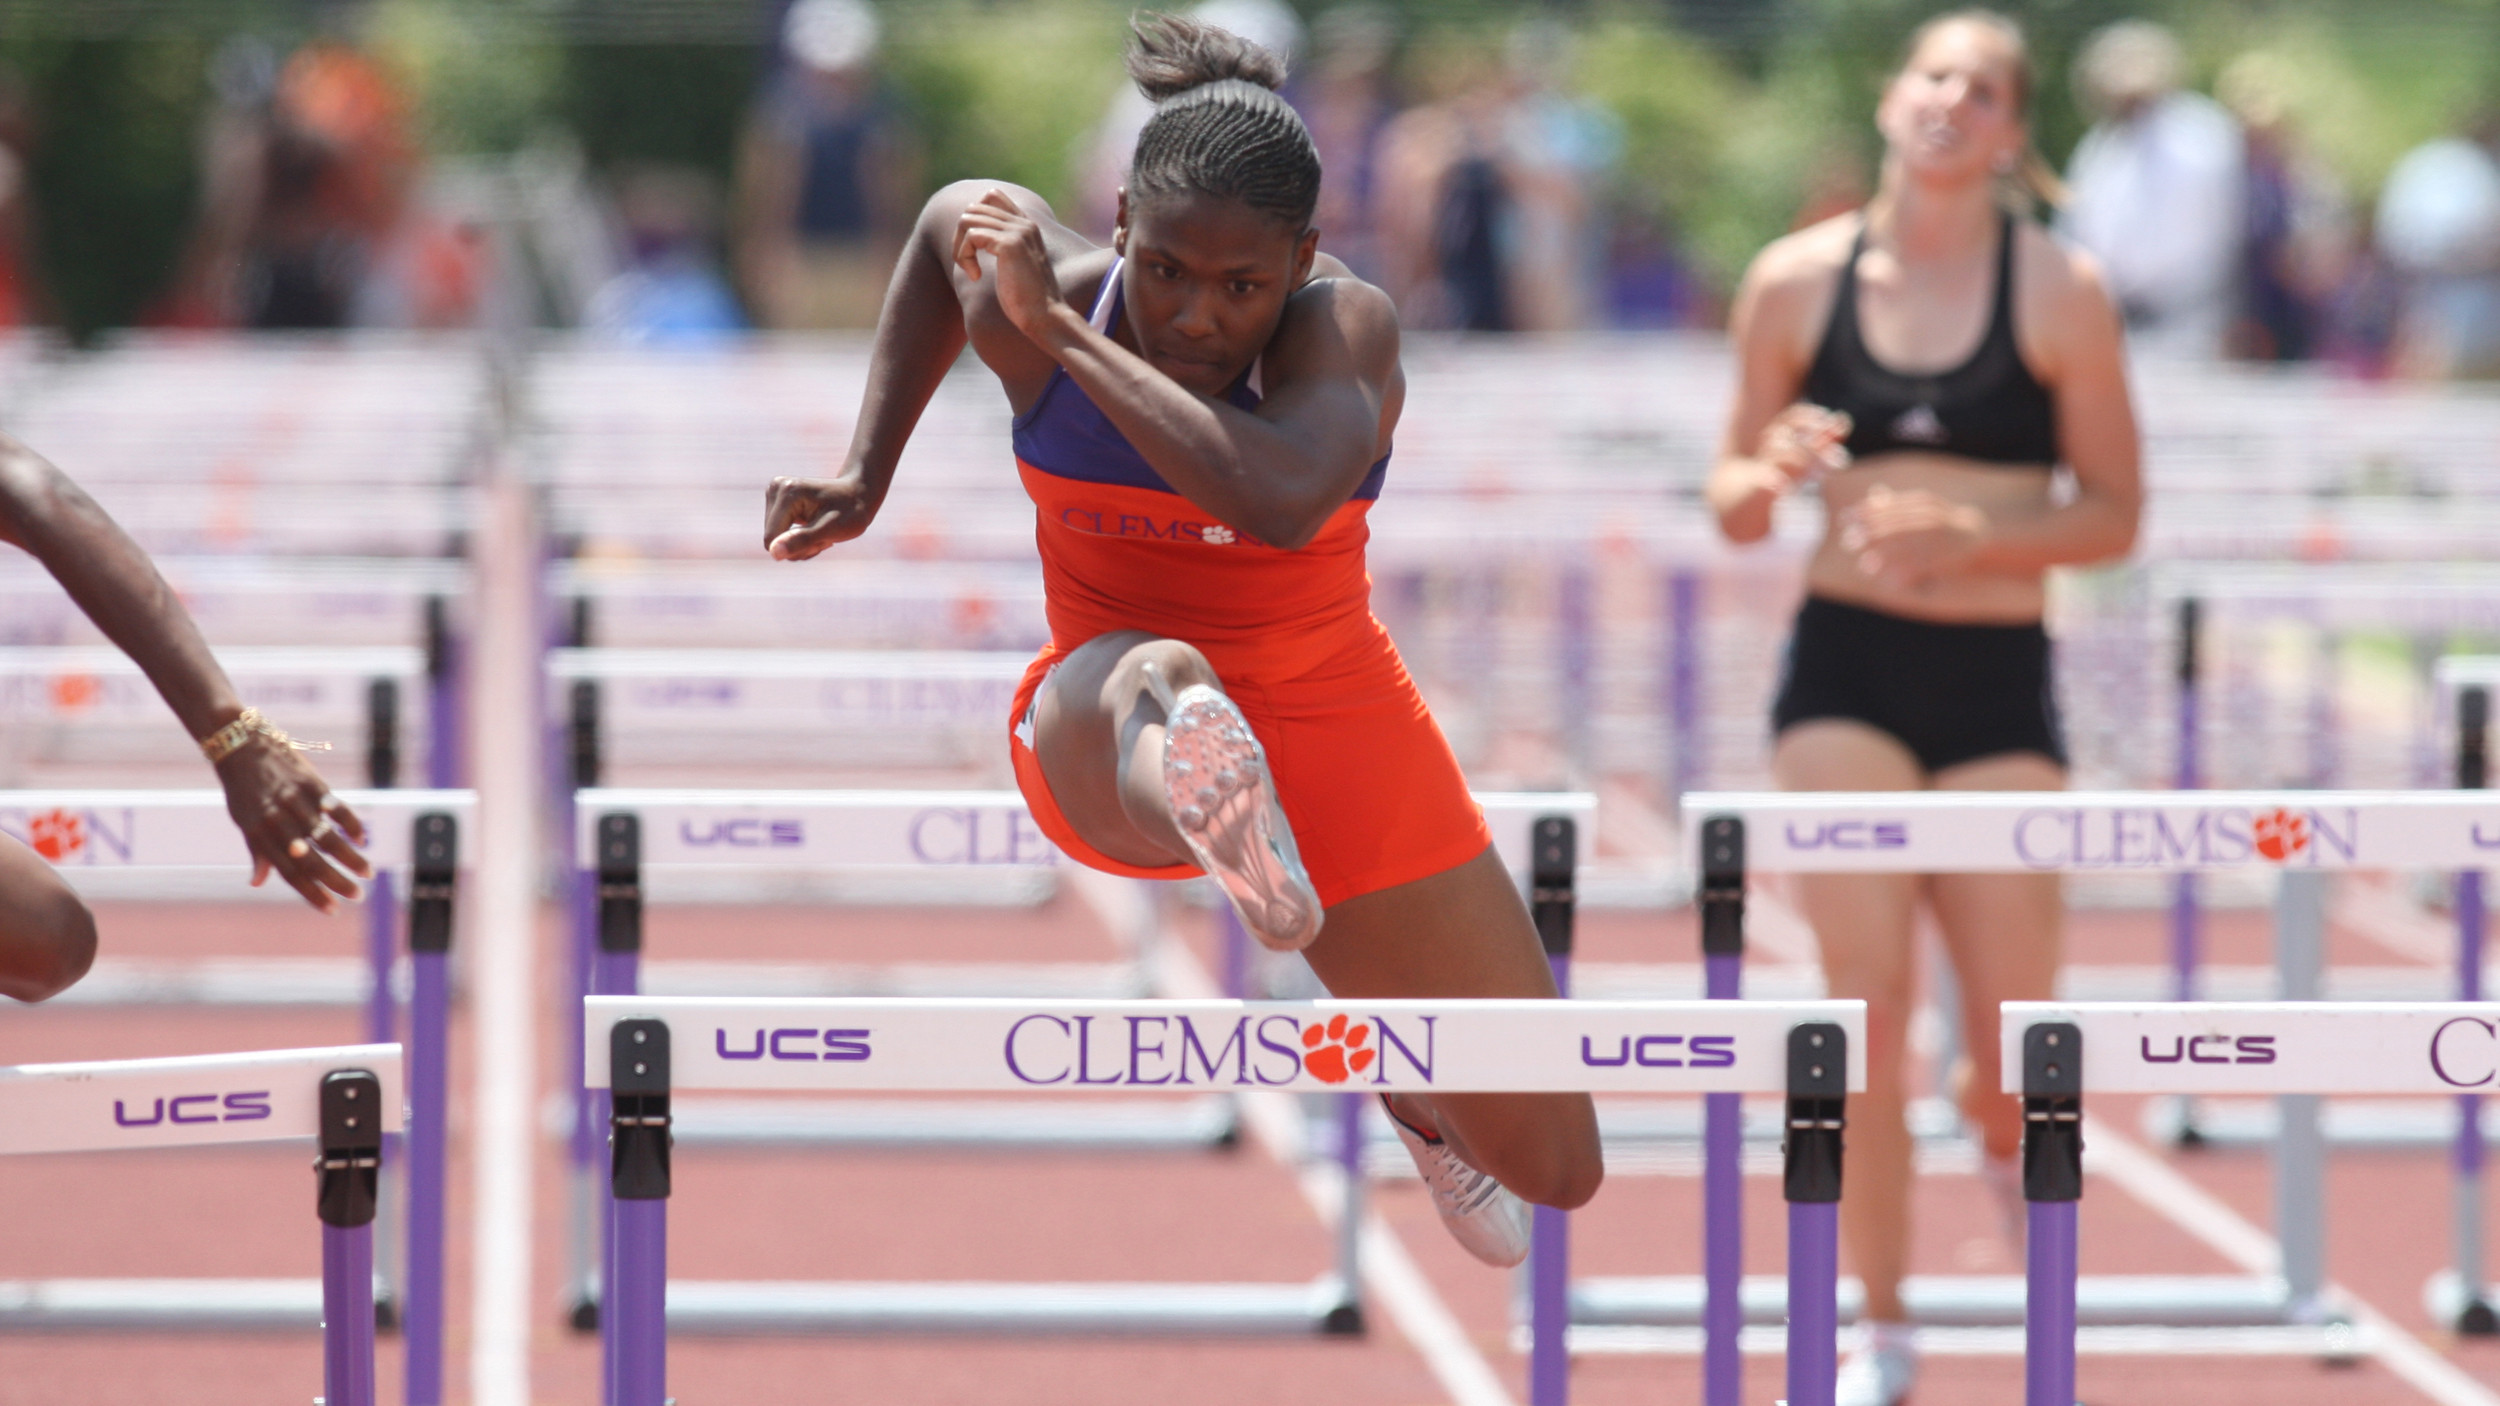 Clemson Plays Host to Final Home Meet of Season, Third Annual Bob Pollock Invitational